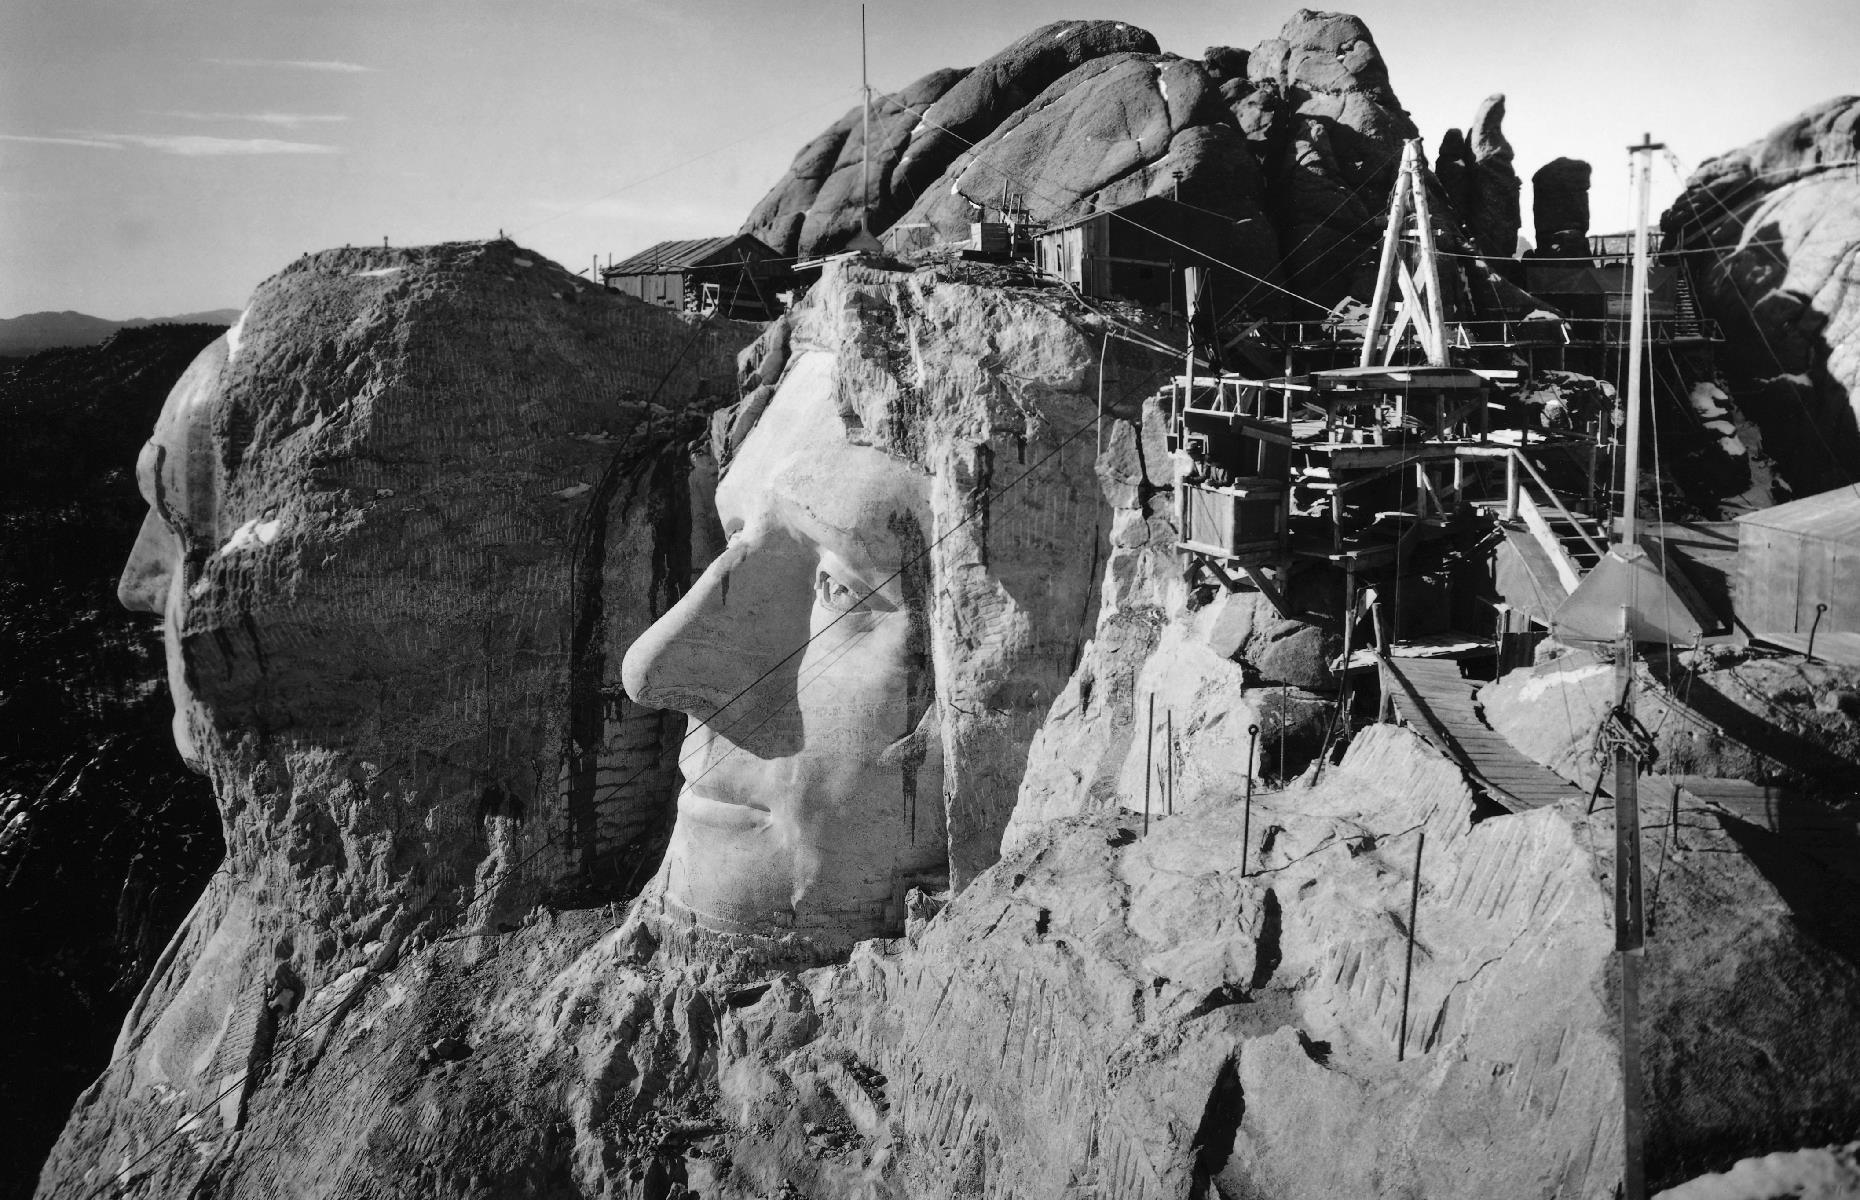 Slide 3 of 41: It took around 14 years to build the four, gigantic presidential faces, with work beginning in 1927 and eventually finishing up in 1941. Great chunks of rock were blasted away with explosives, then the striking likenesses were carved out with chisels and jackhammers. This photo was taken circa 1940, towards the end of construction: you can clearly see the sage profiles of Thomas Jefferson and George Washington a little farther away.